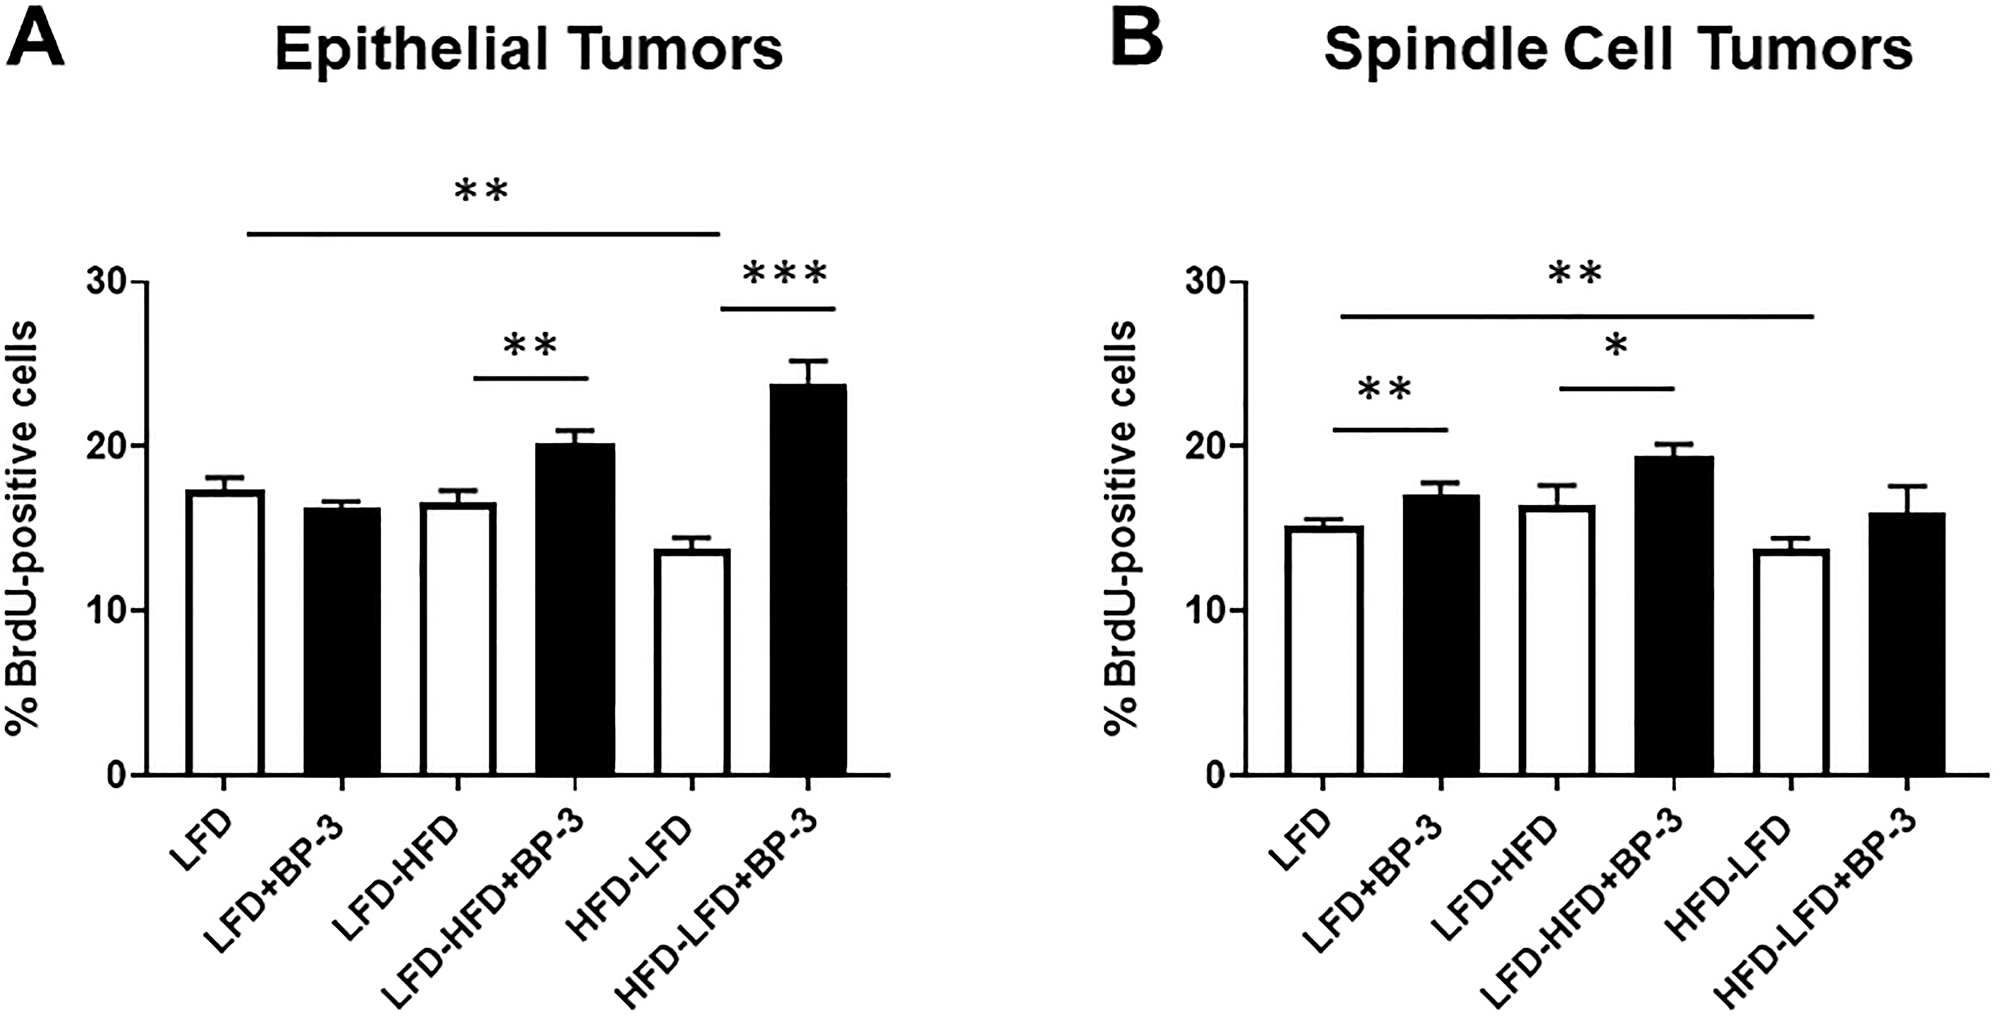 BP-3 treatment increased tumor proliferation in a manner dependent on both diet and histological type.